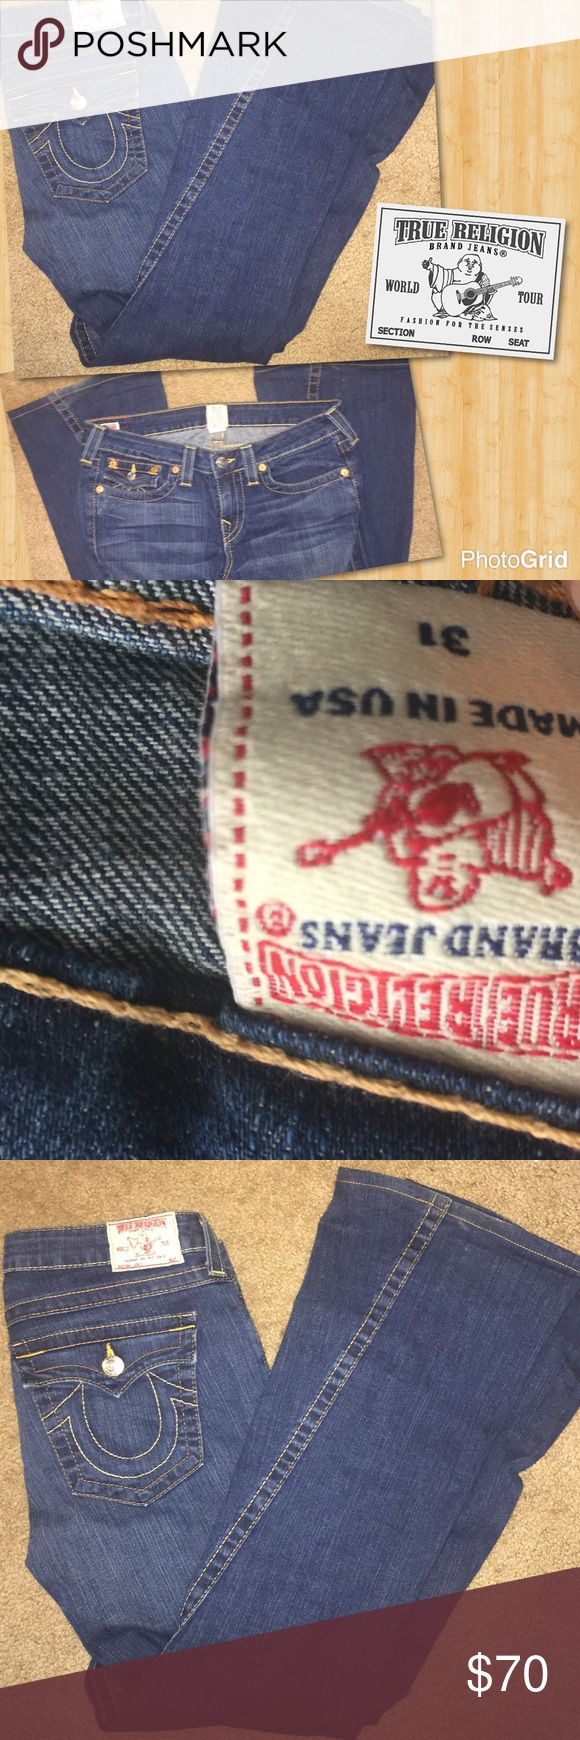 True religion jeans True religion jeans size 31 very nice flair boot cut so cute great condition True Religion Jeans Flare & Wide Leg